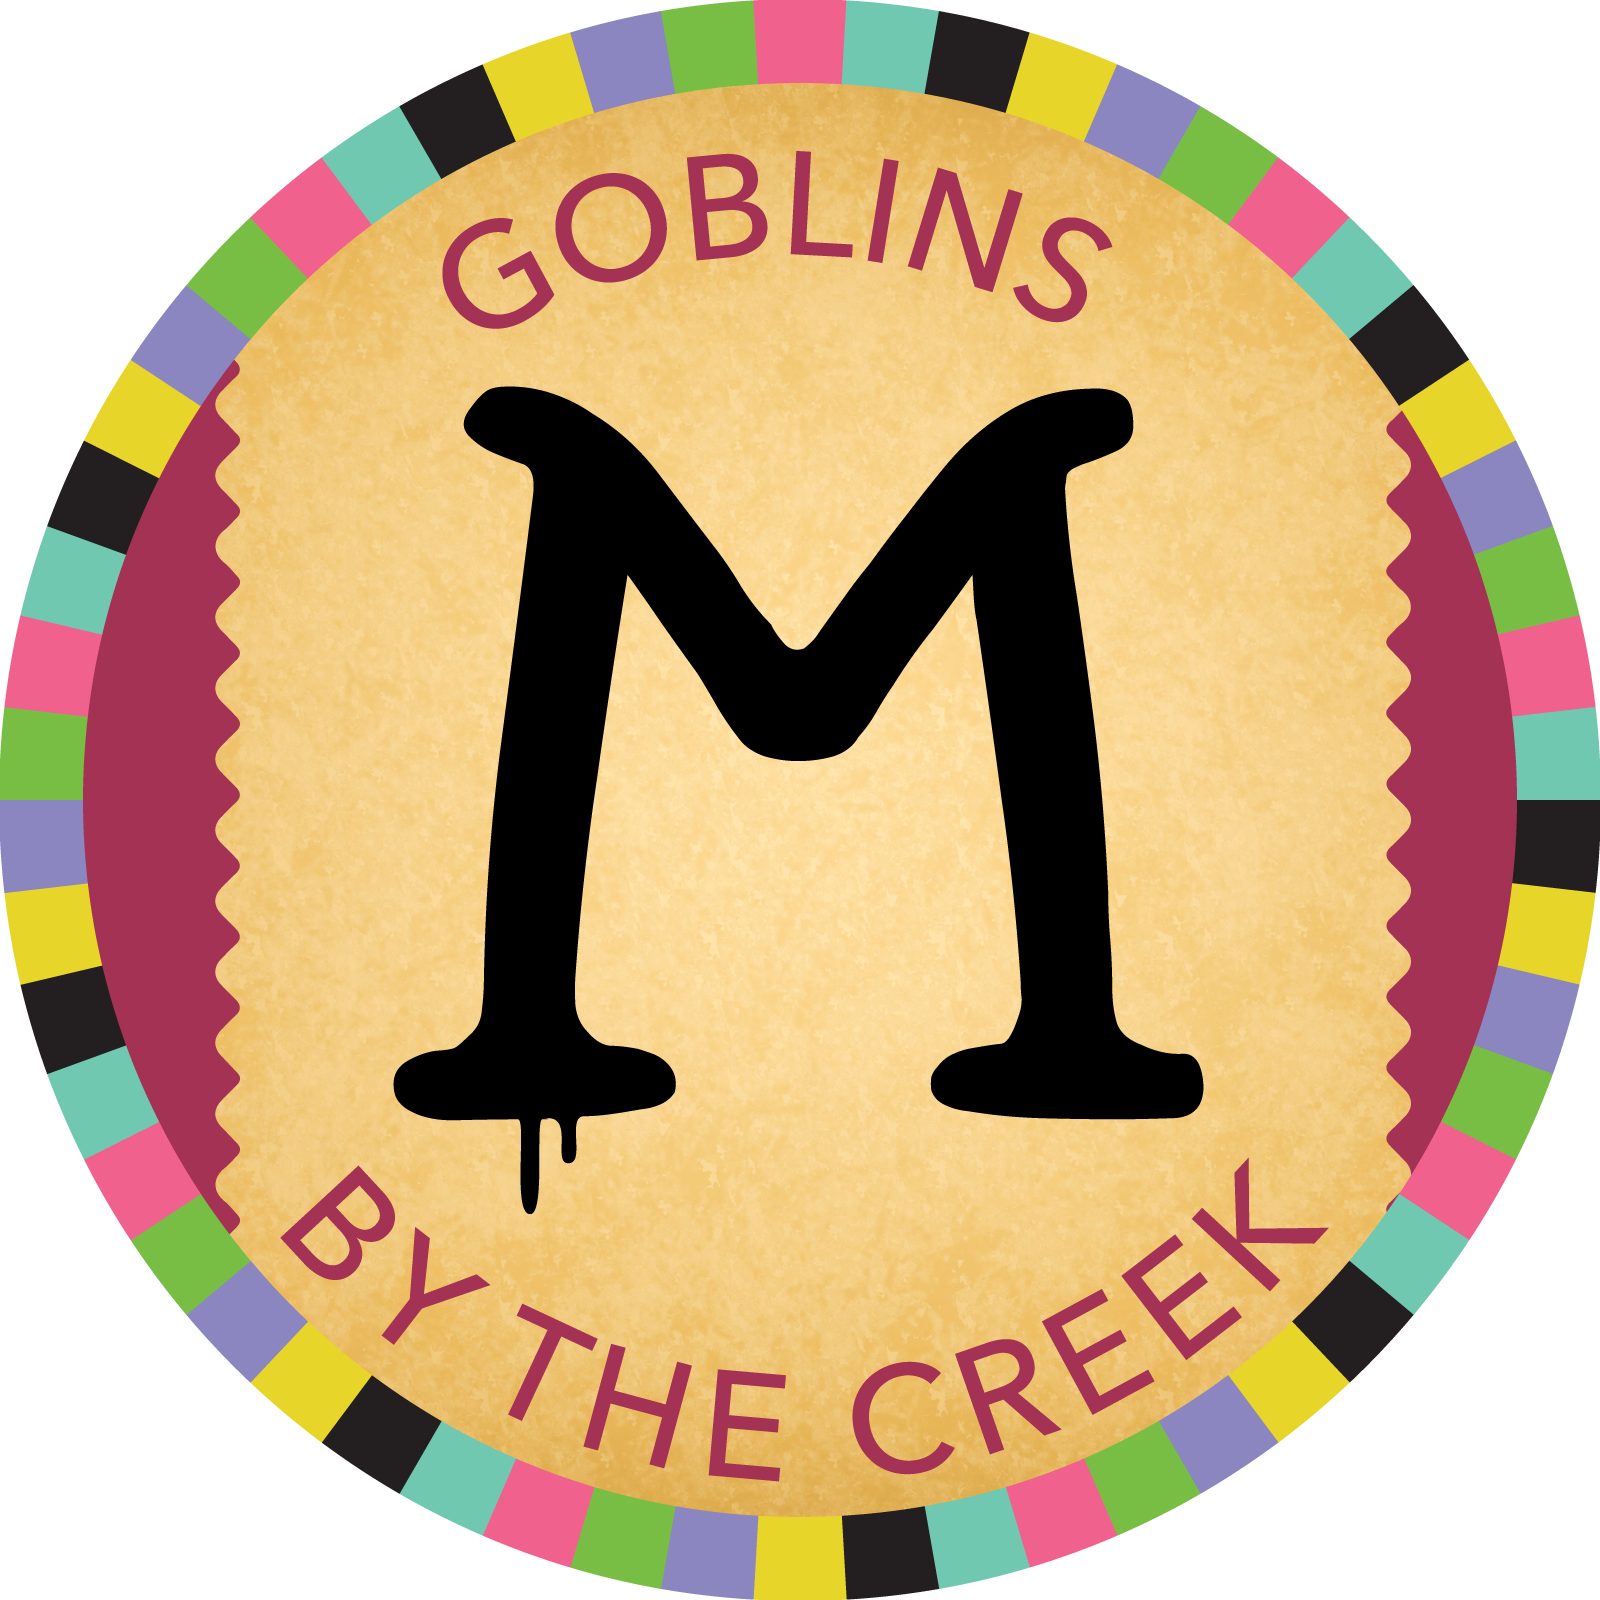 Goblins By The Creek badge image